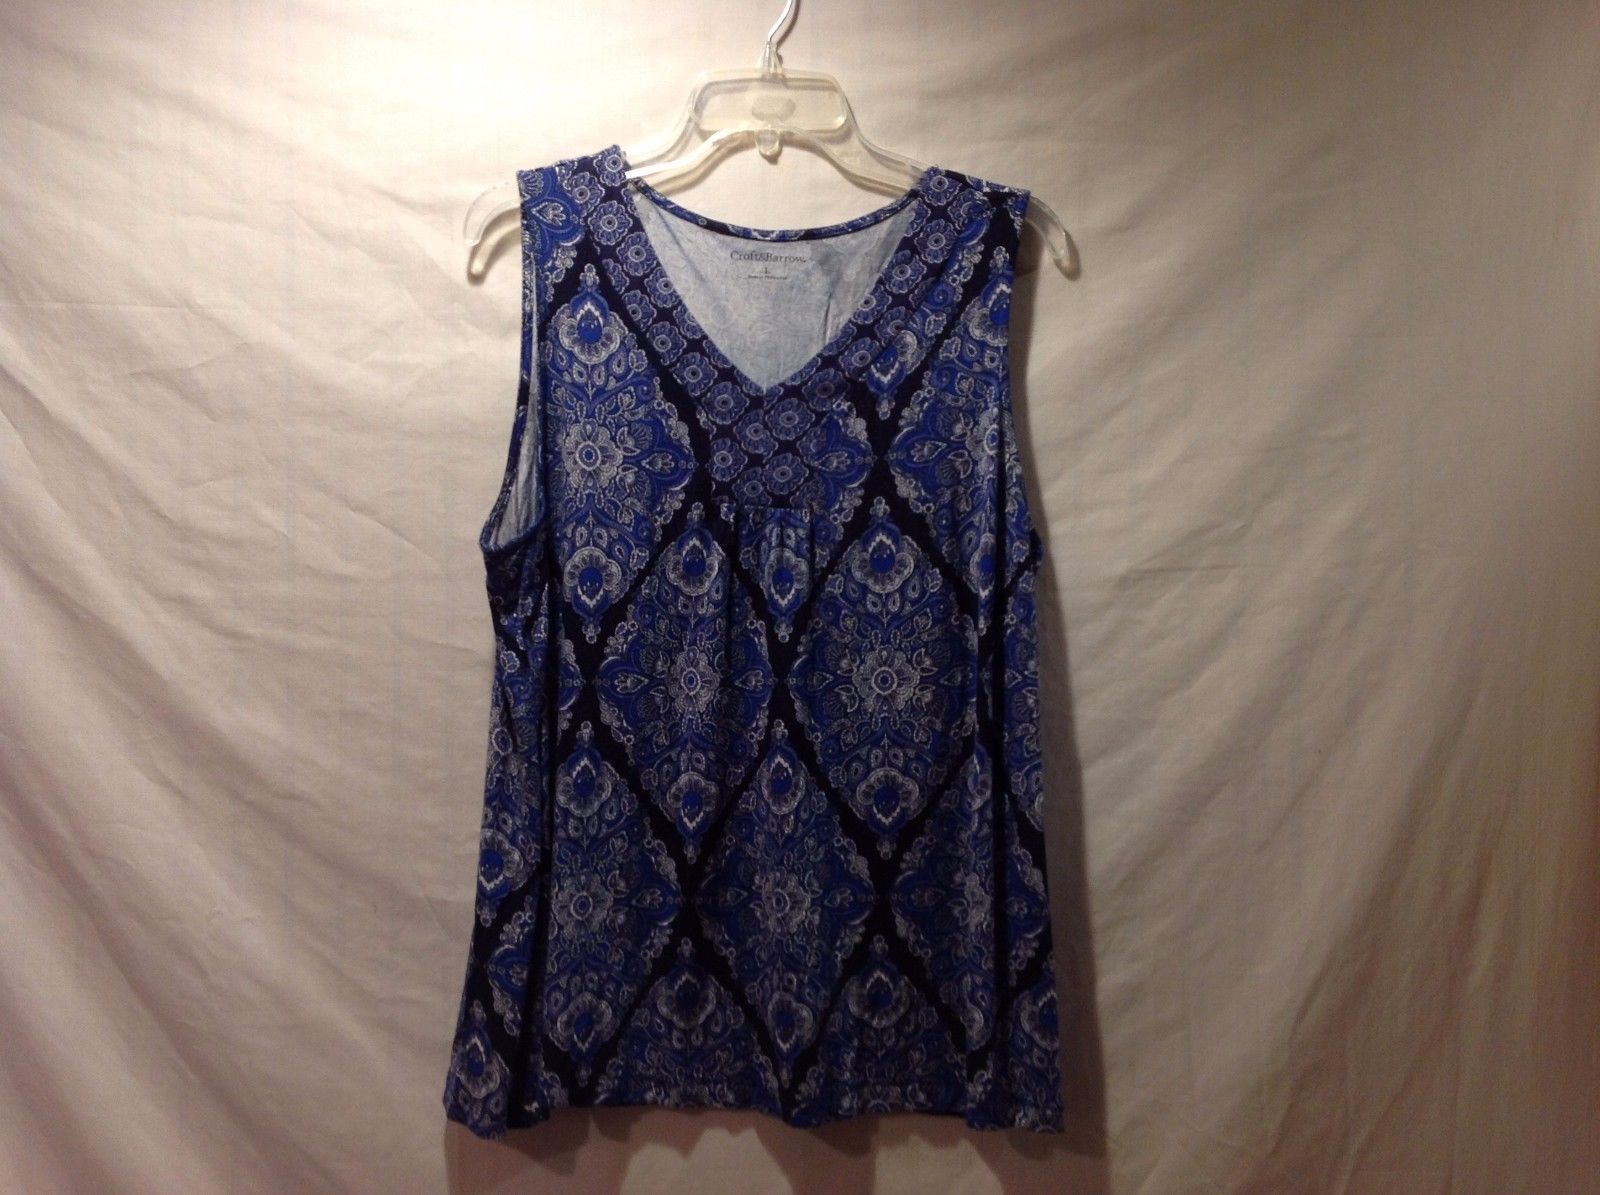 Great Condition Croft & Barrow Blue Lavender Floral Paisley Sleeveless Blouse